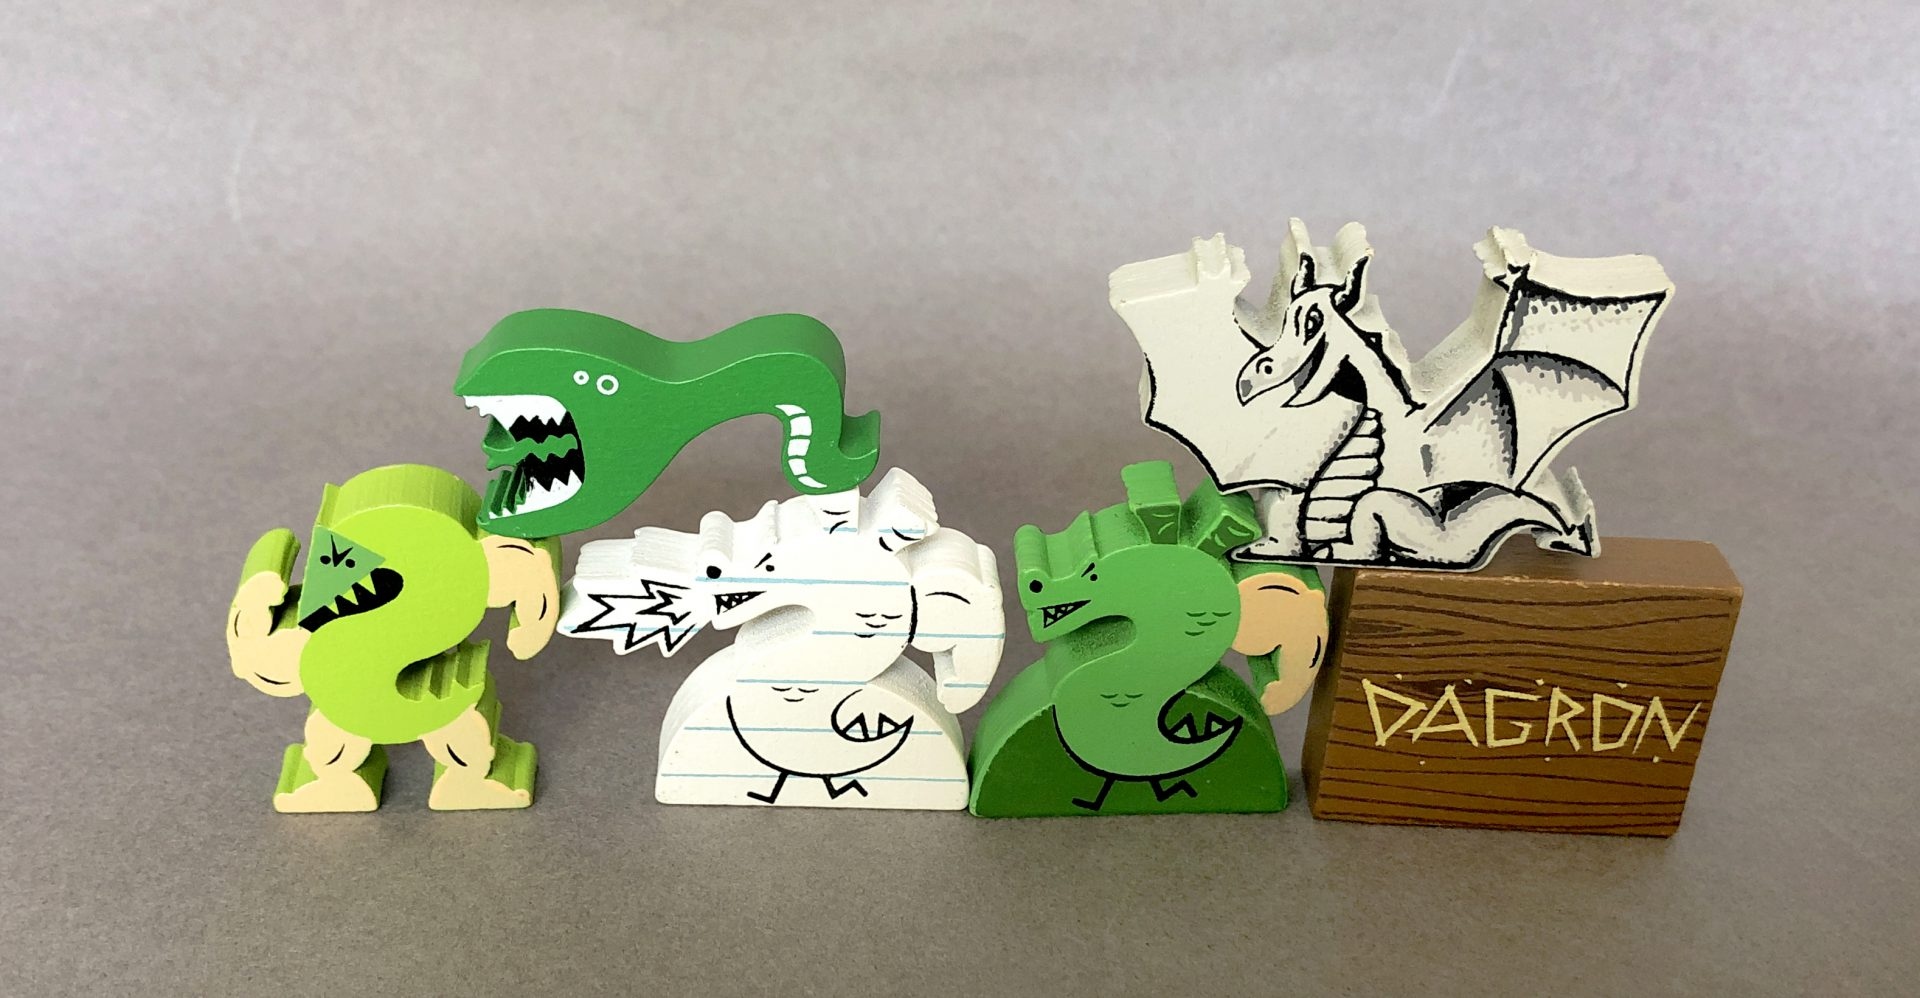 A Variety of Trogdor Meeples